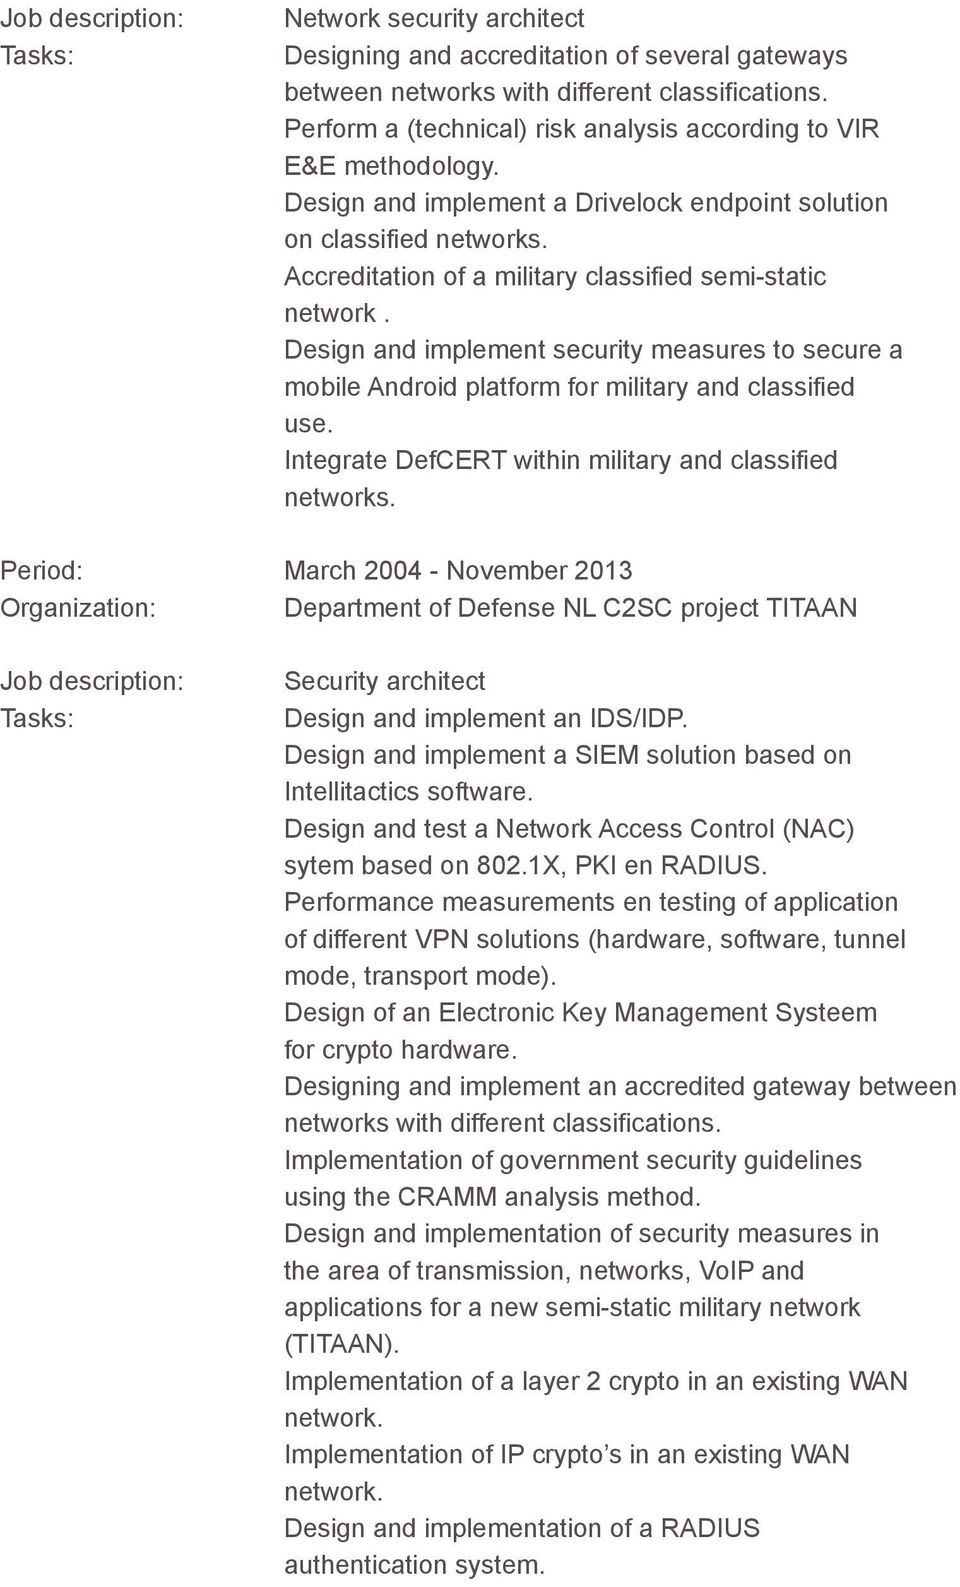 Accreditation of a military classified semi-static network. Design and implement security measures to secure a mobile Android platform for military and classified use.